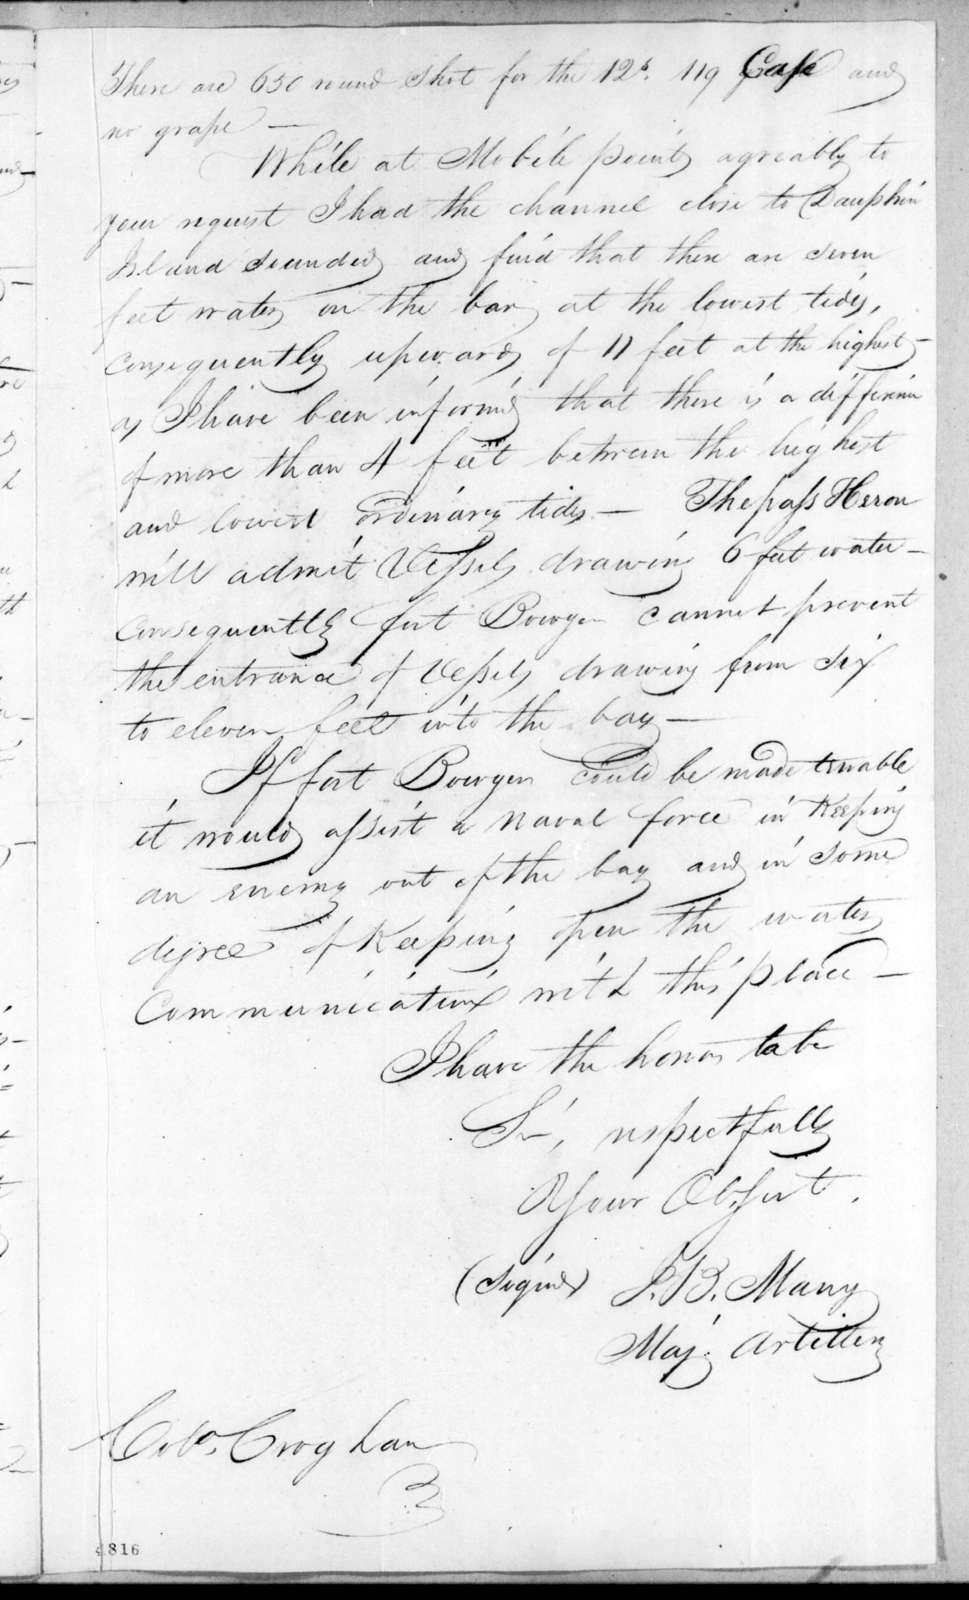 James B. Many to George Croghan, January 13, 1816